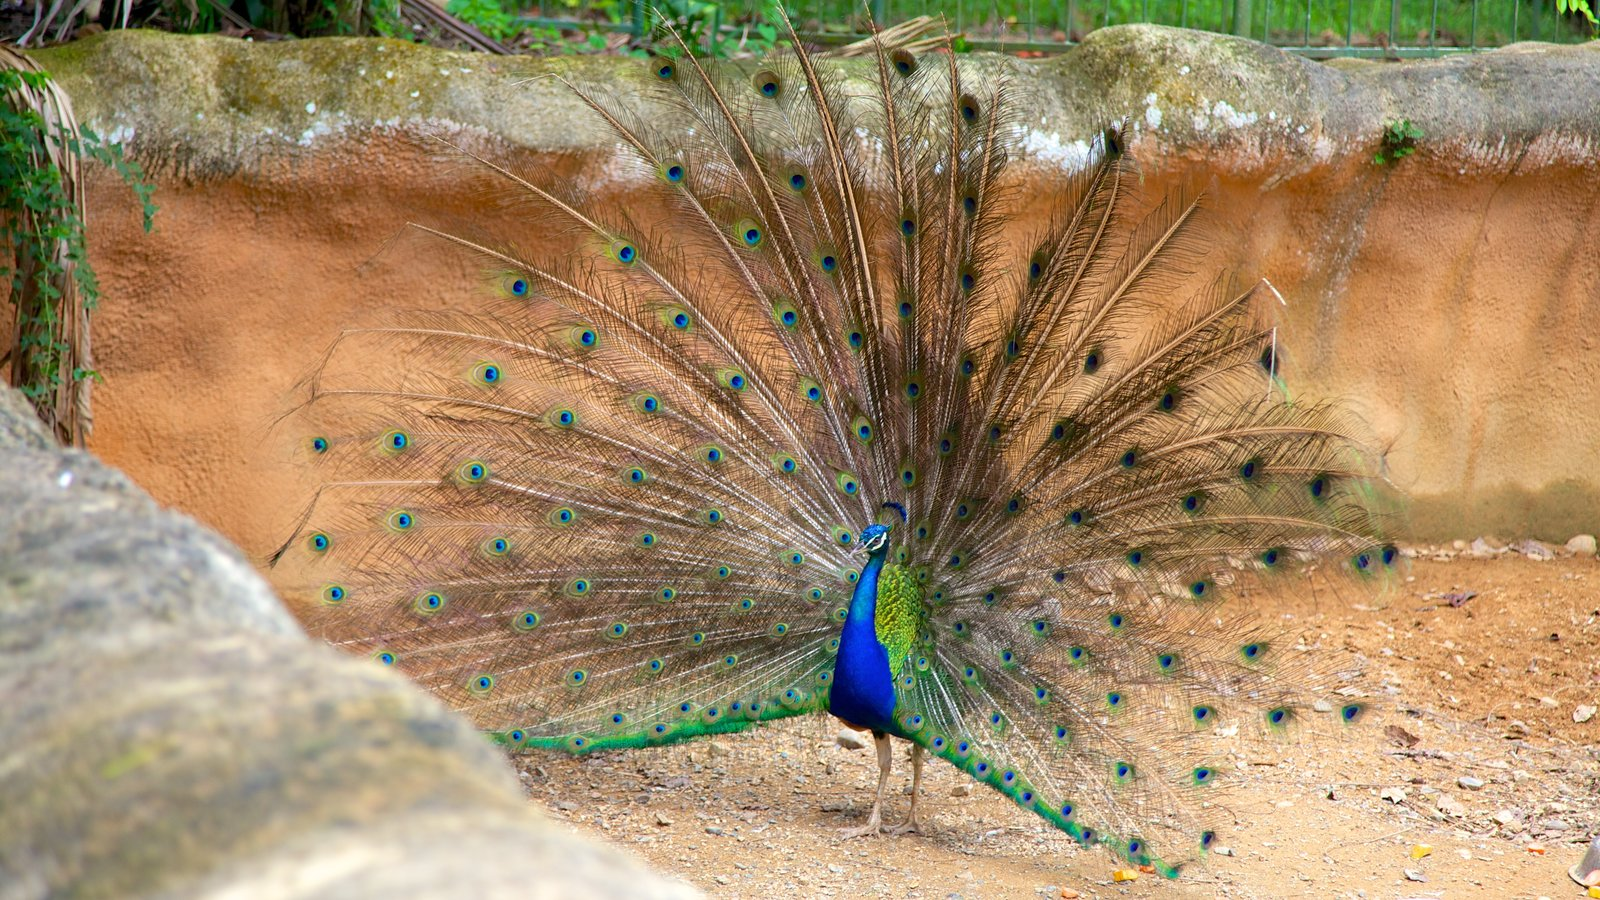 Mayaguez Zoo which includes zoo animals and bird life